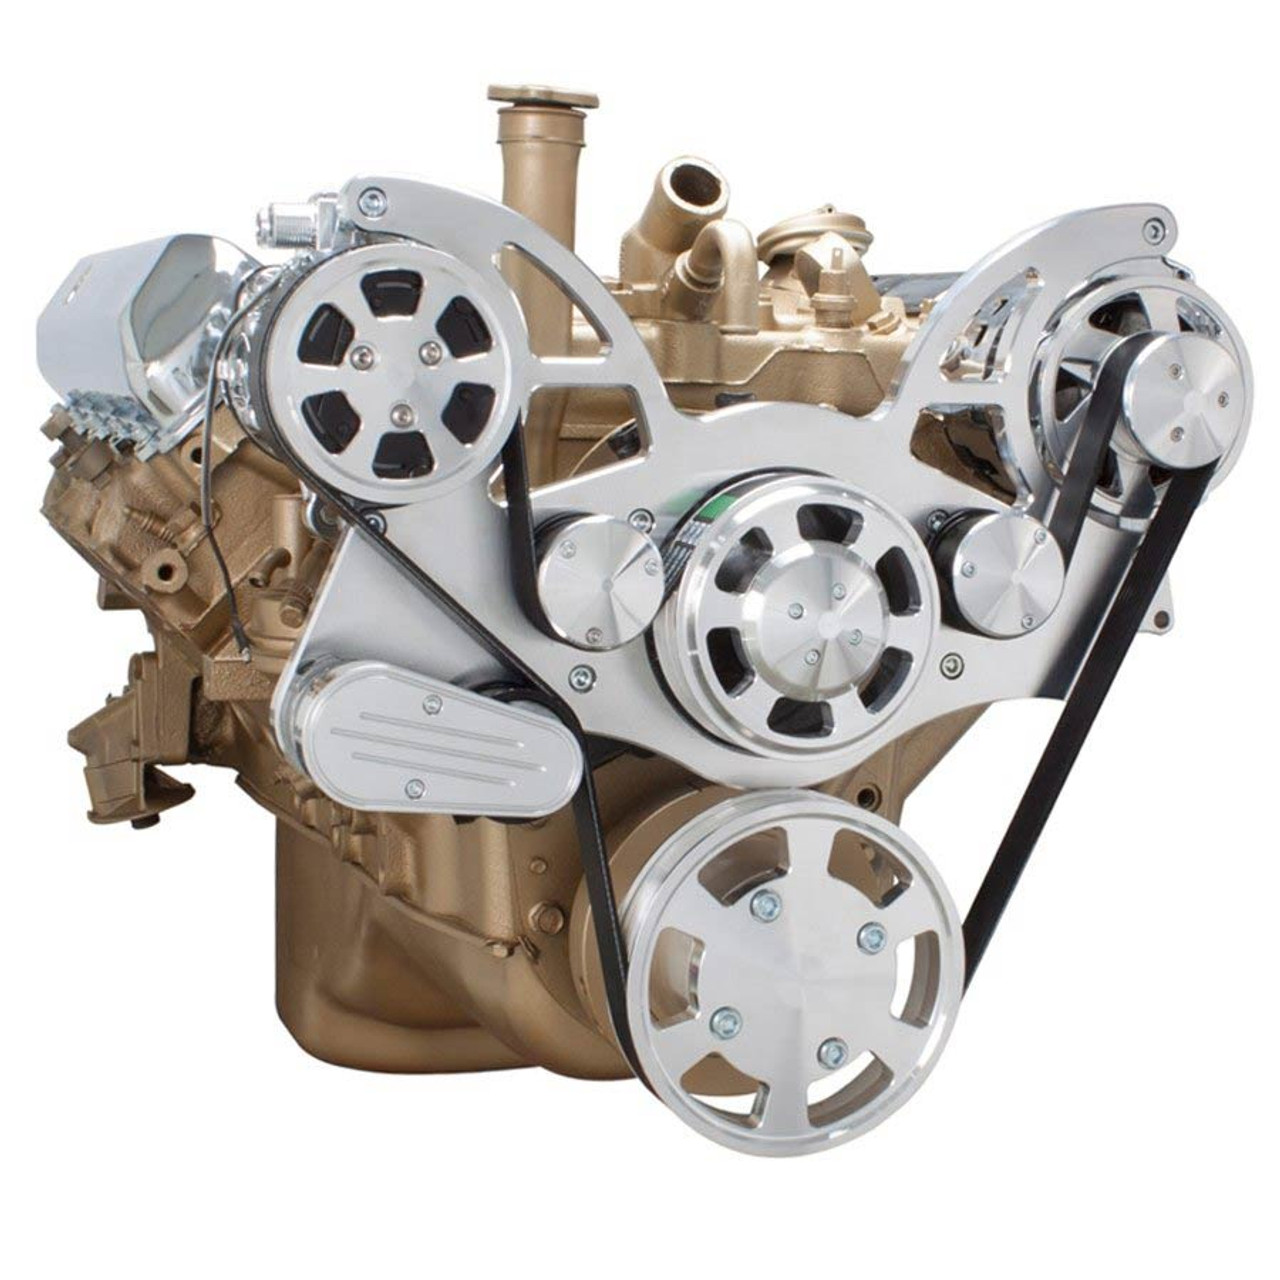 Serpentine Conversion Kit For Oldsmobile 350 455 With Ac Alternator. Serpentine System For Oldsmobile 350455 Ac Alternator All Inclusive. Wiring. 455 Olds Engine Belt Diagram At Scoala.co